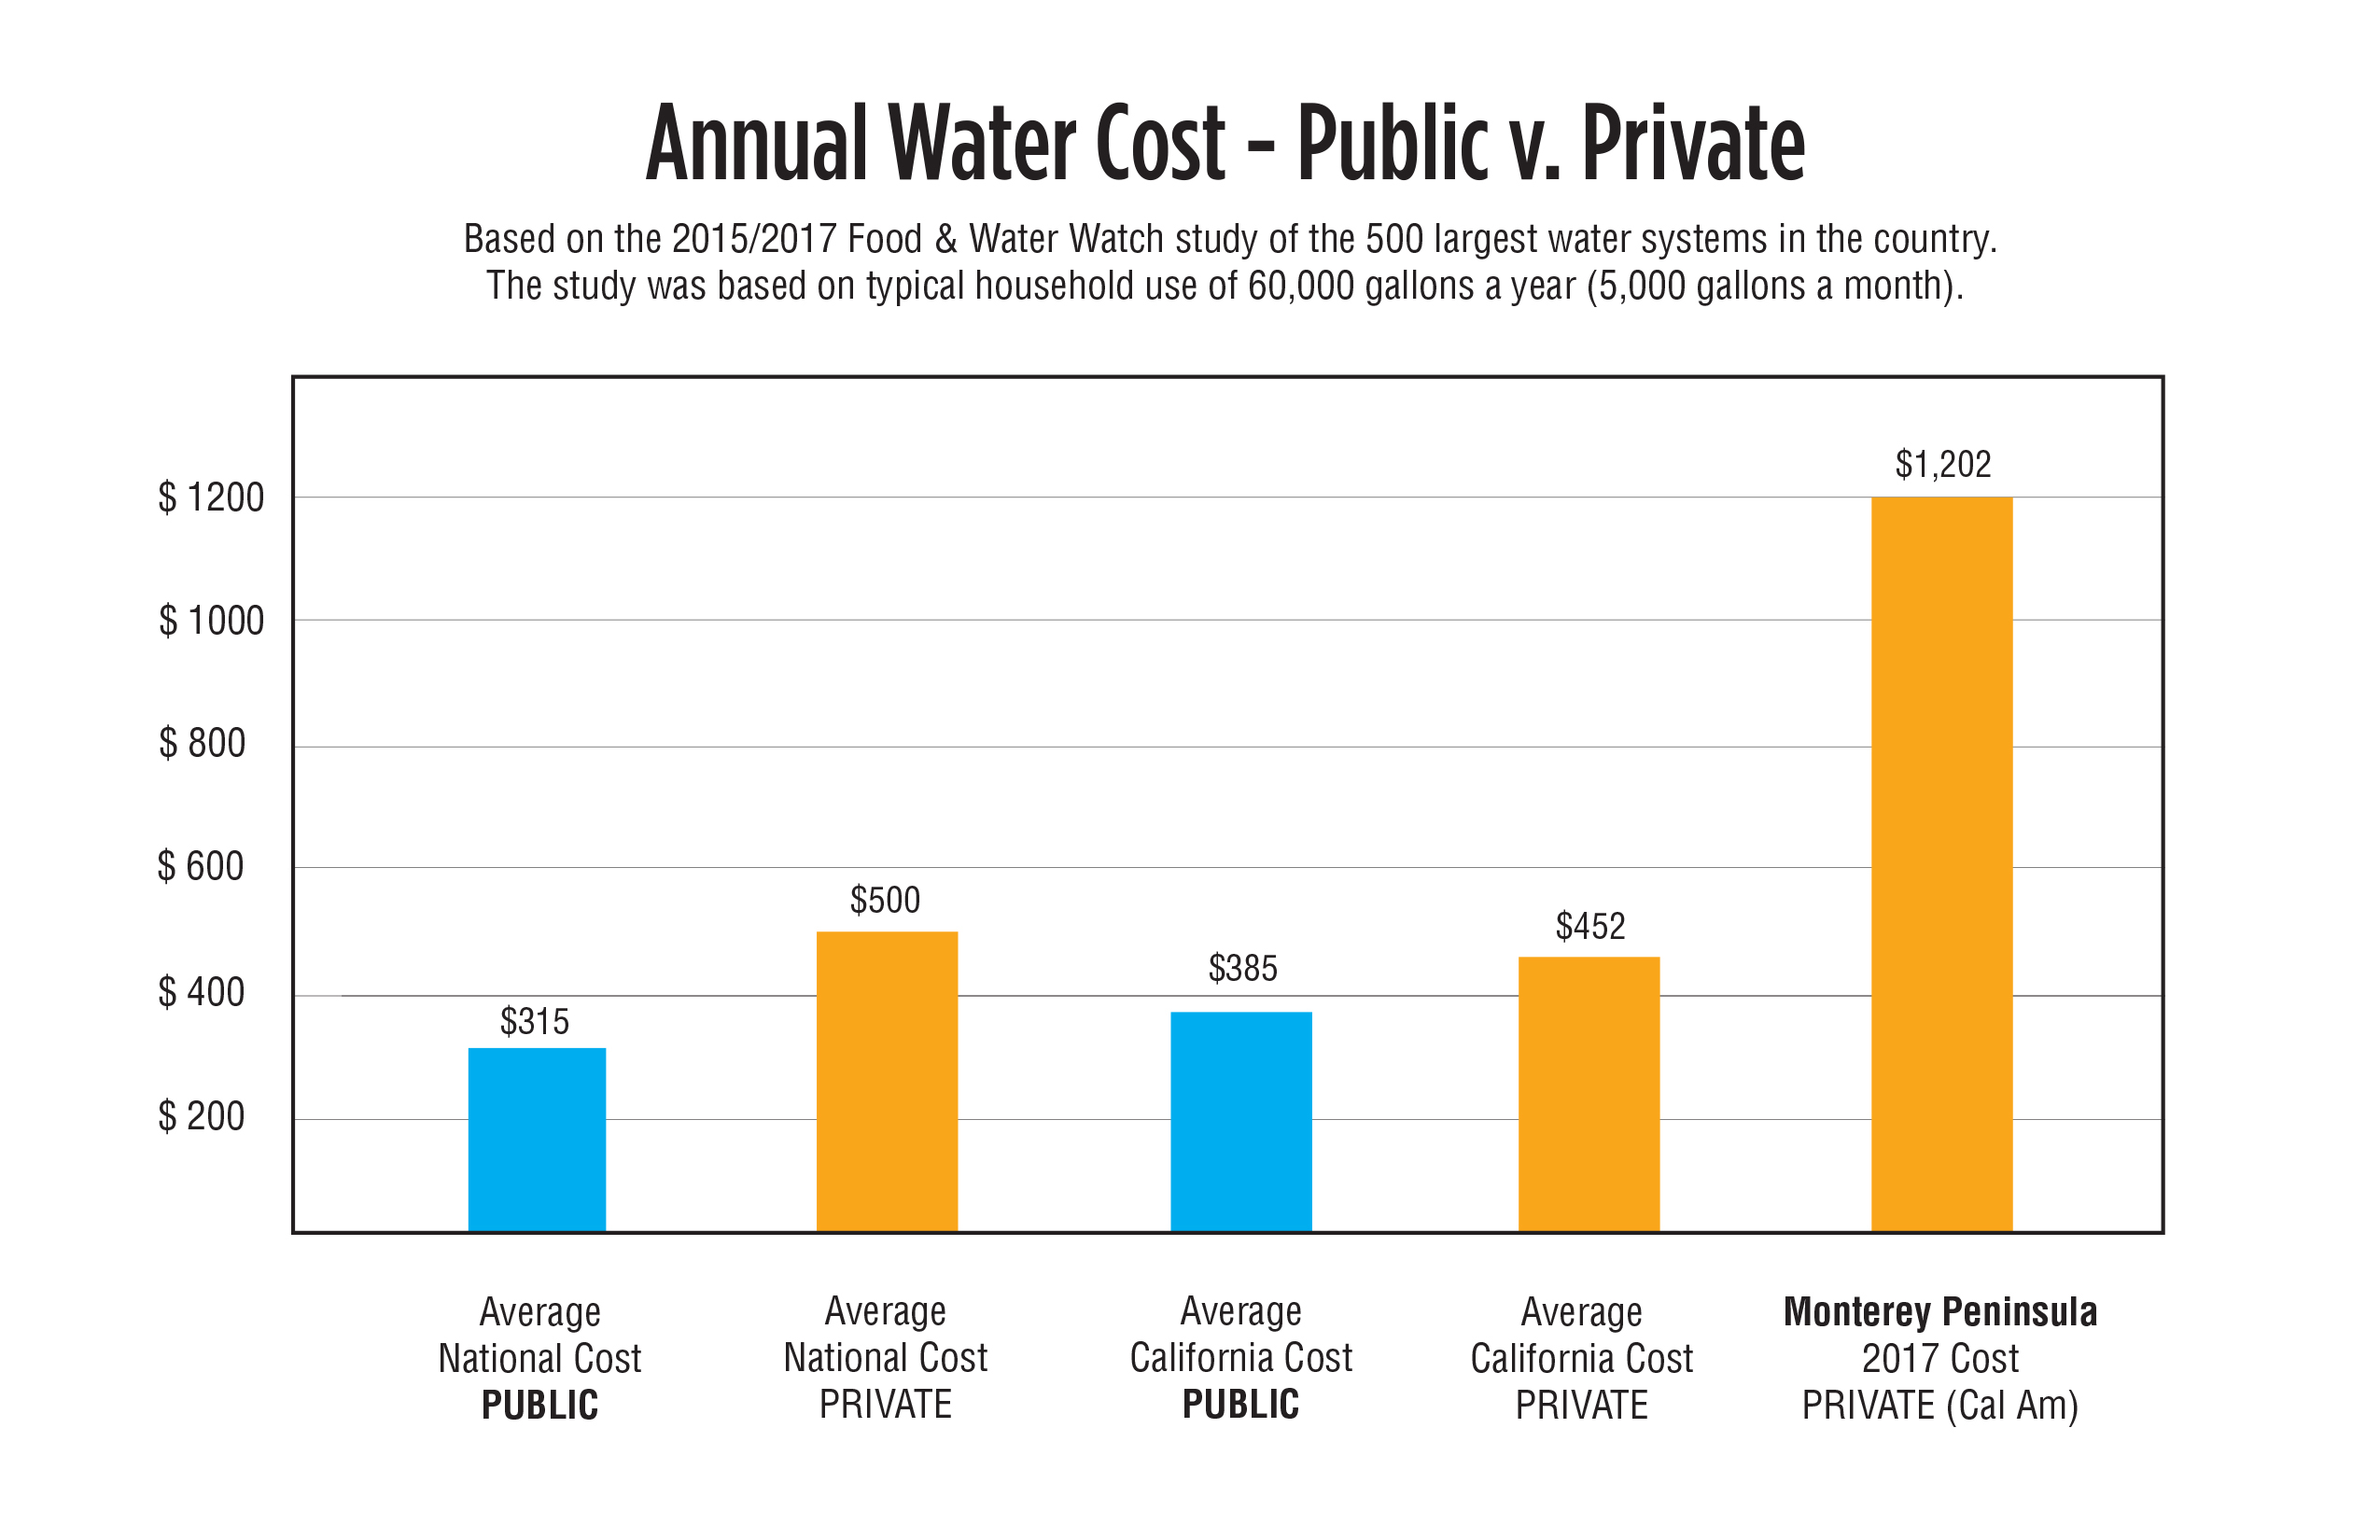 Public_v_Private_Cost_Chart.jpg